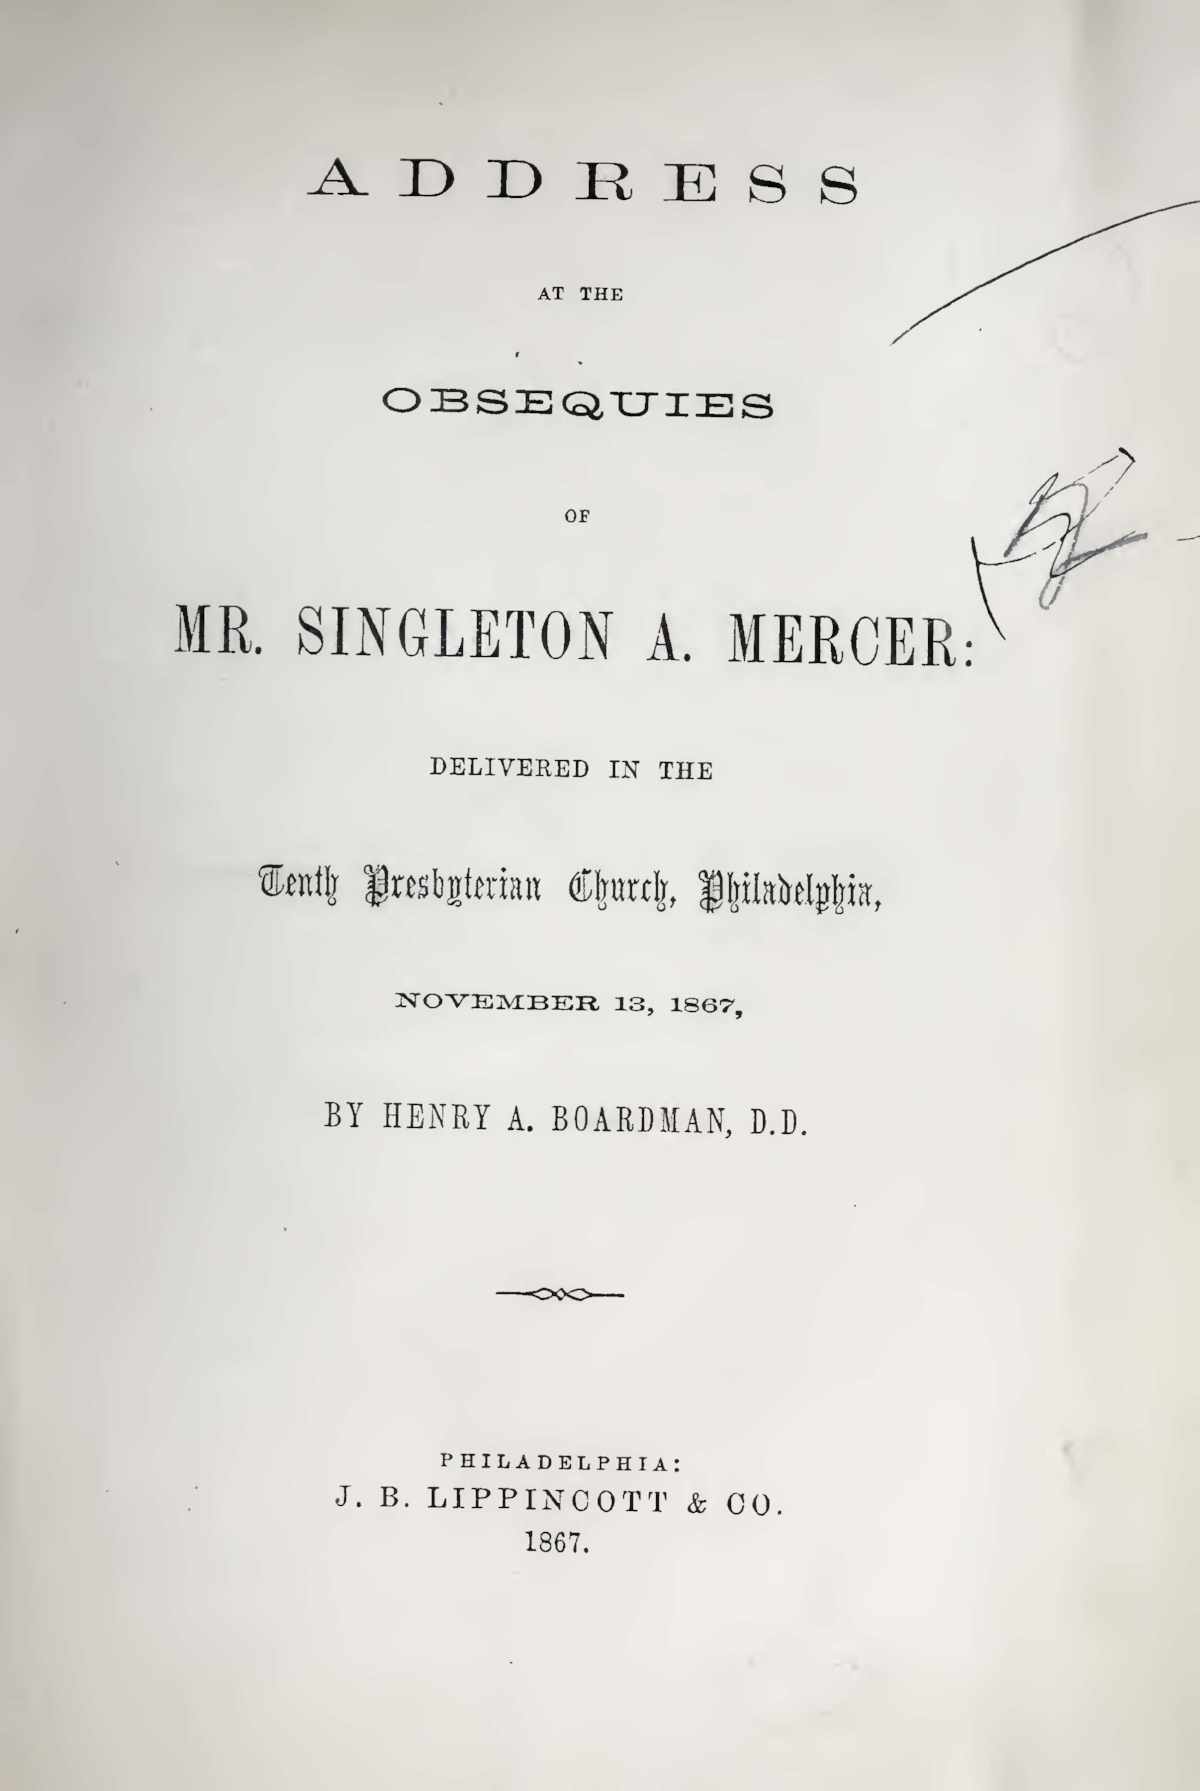 Boardman, Henry Augustus, Address at the Obsequies of Mr. Singleton A. Mercer Title Page.jpg